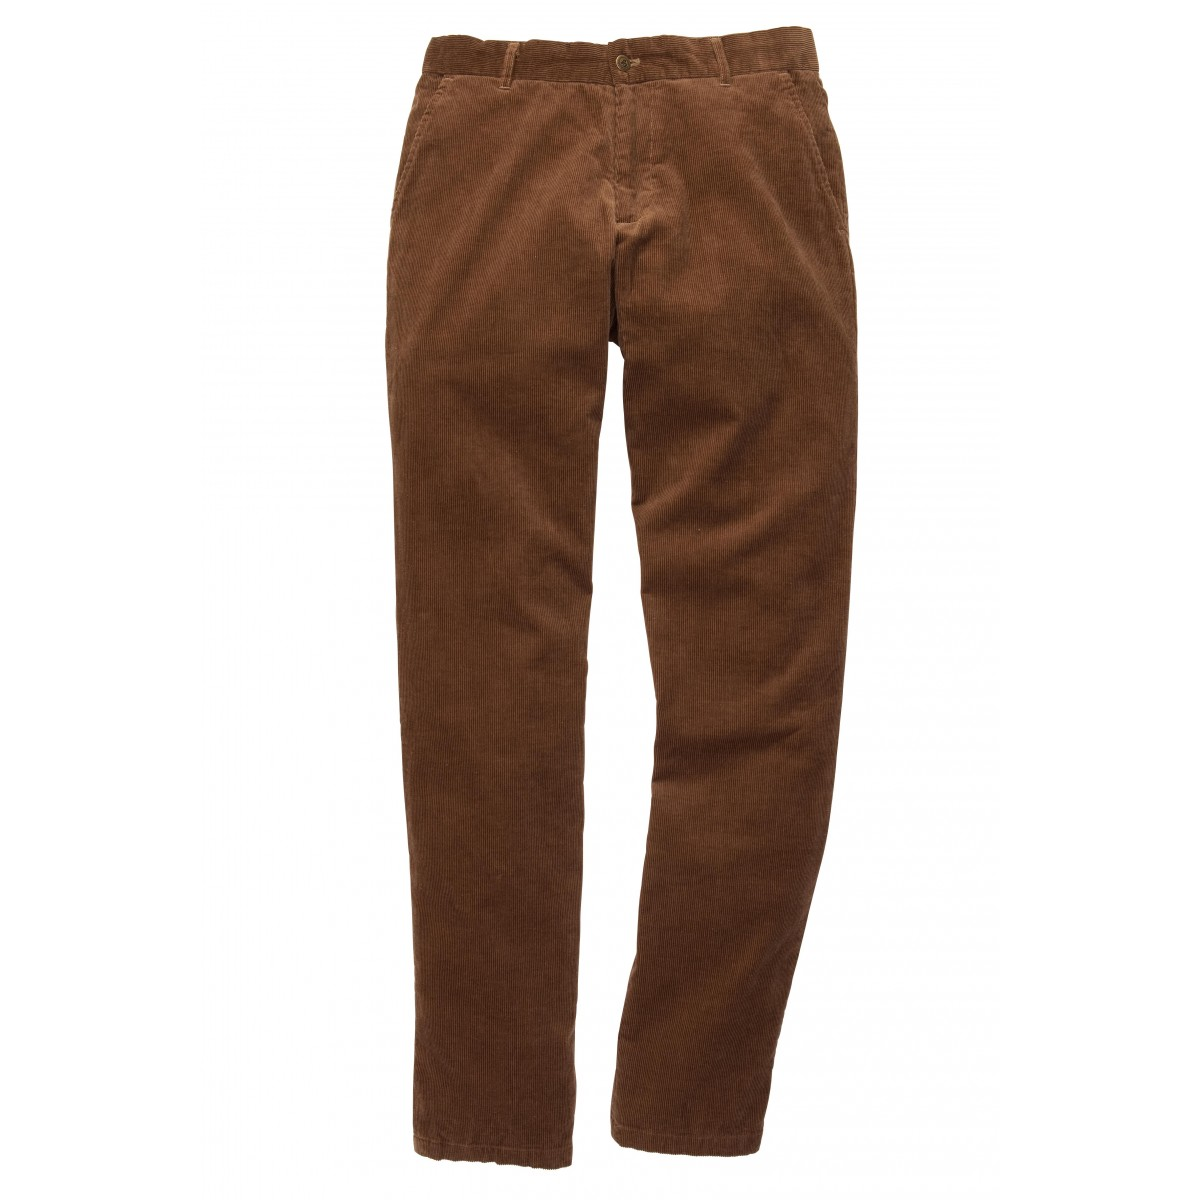 Campus Cord: Back Road Brown